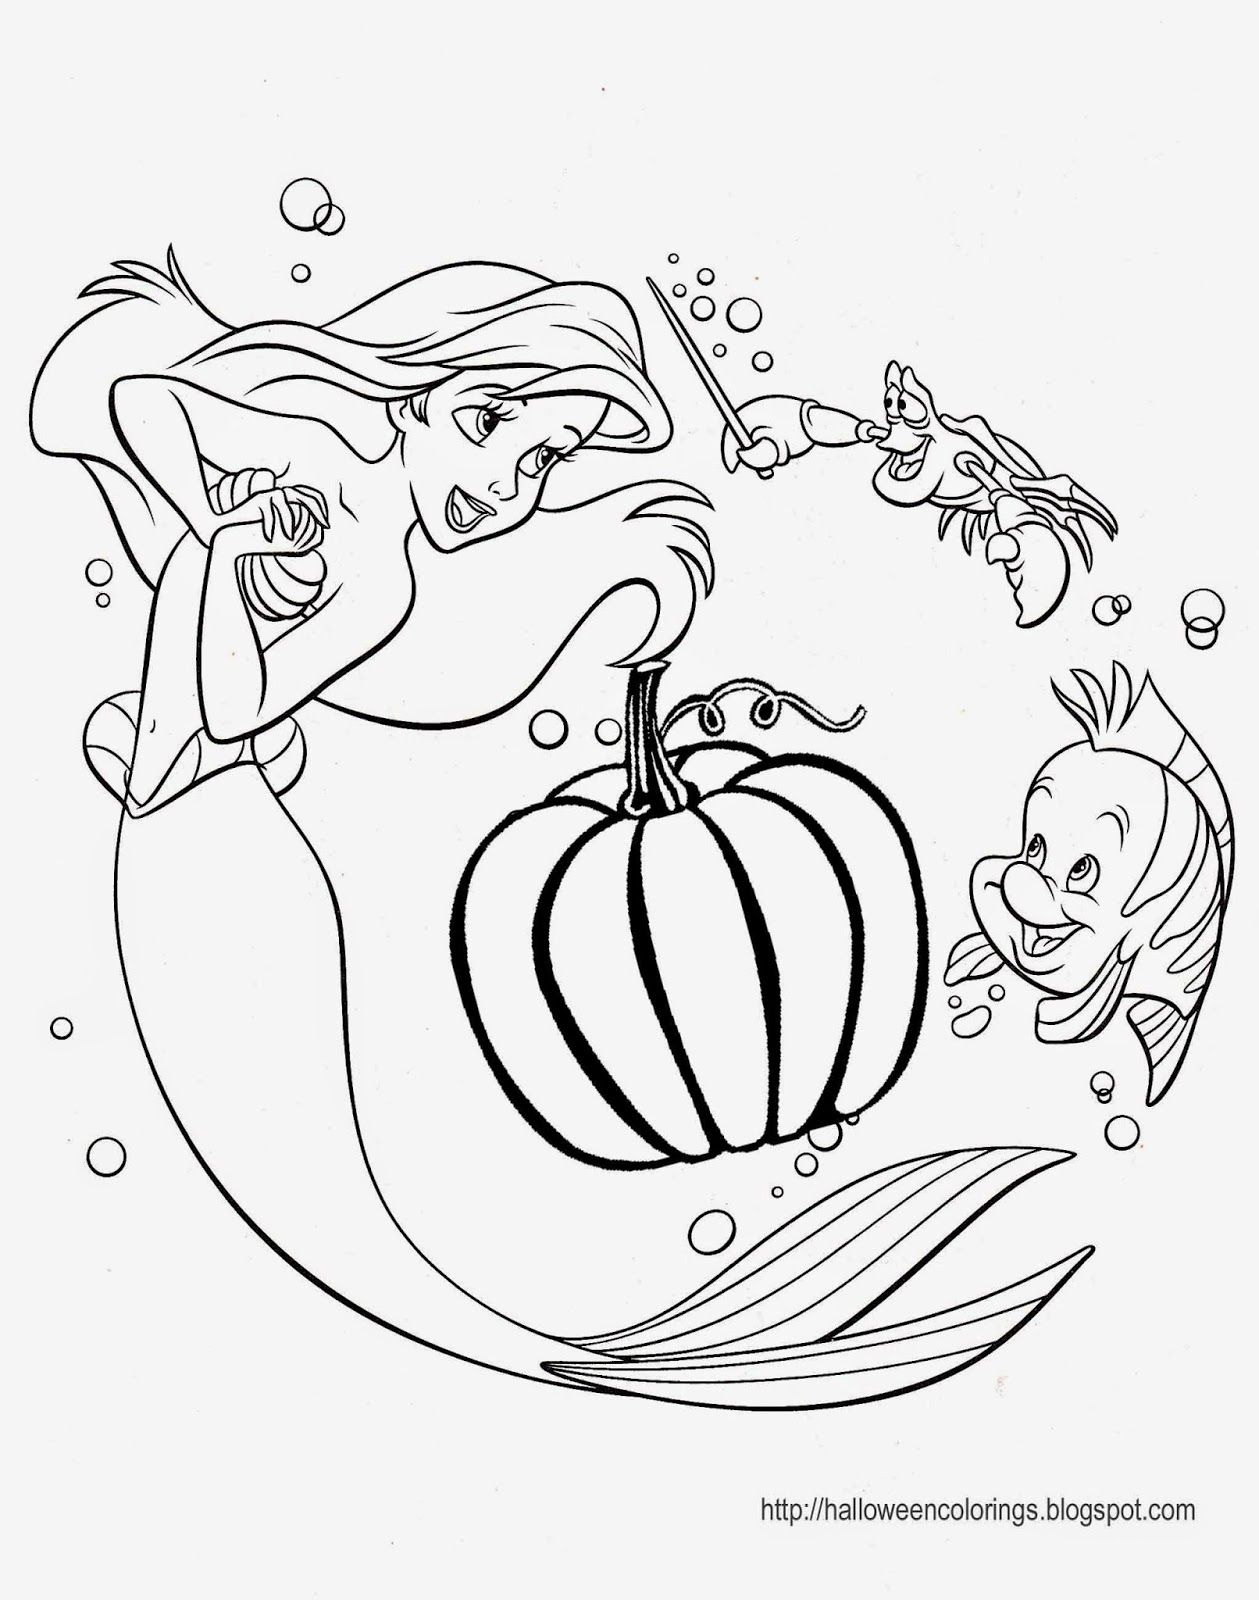 Pin By Deborah Jones On Disney Coloring Pages Games Halloween Coloring Pages Princess Coloring Pages Disney Halloween Coloring Pages